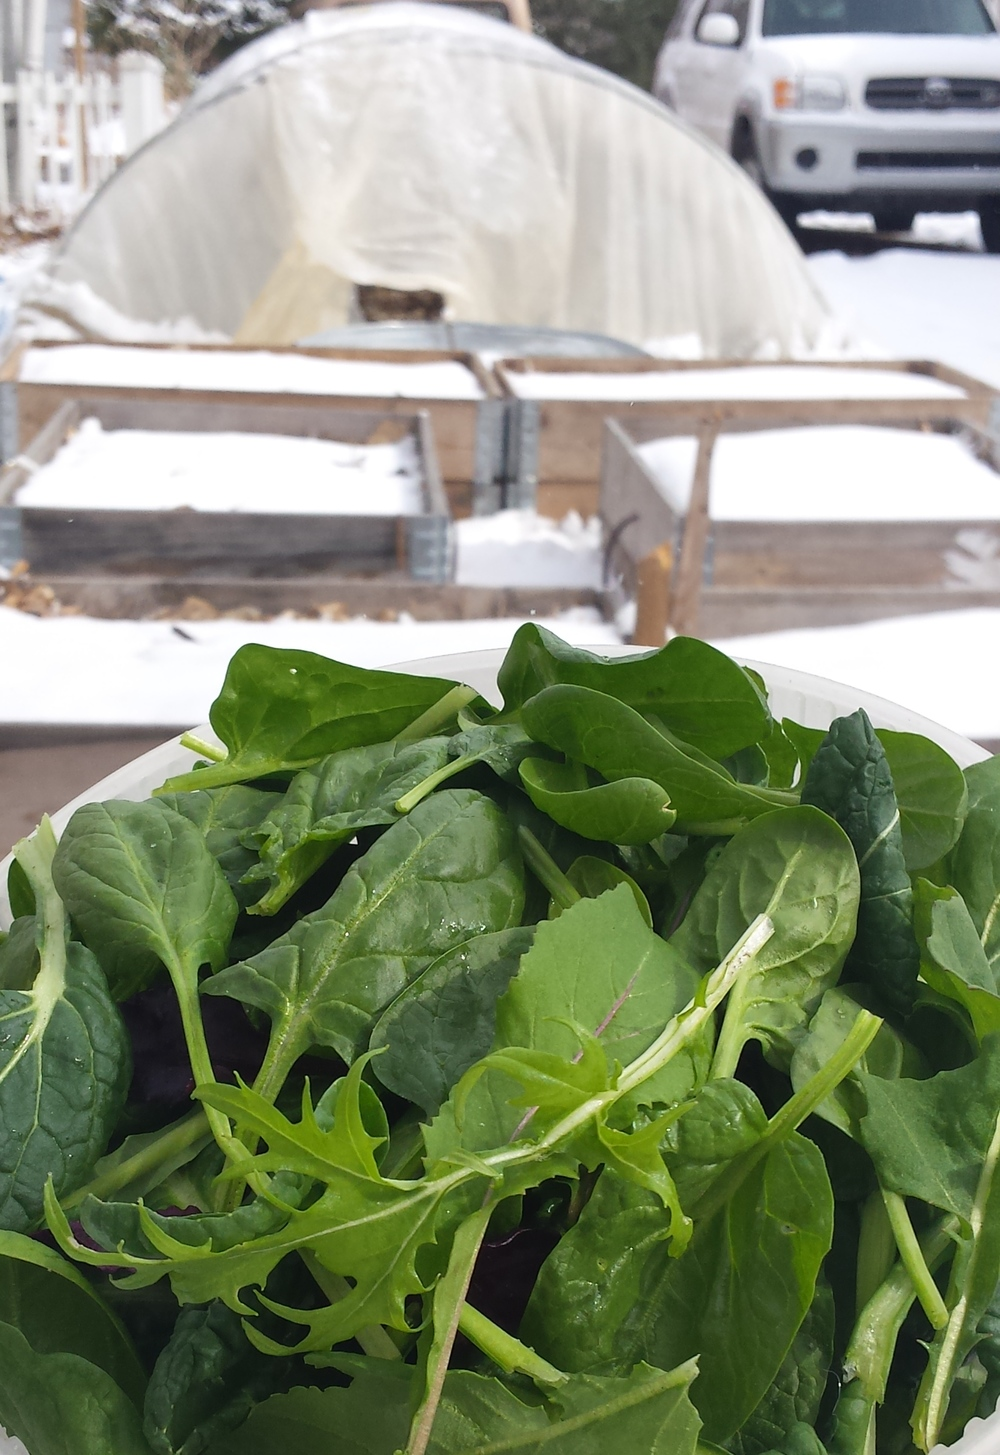 harvesting greens in the snow, growing food in winter, colorado